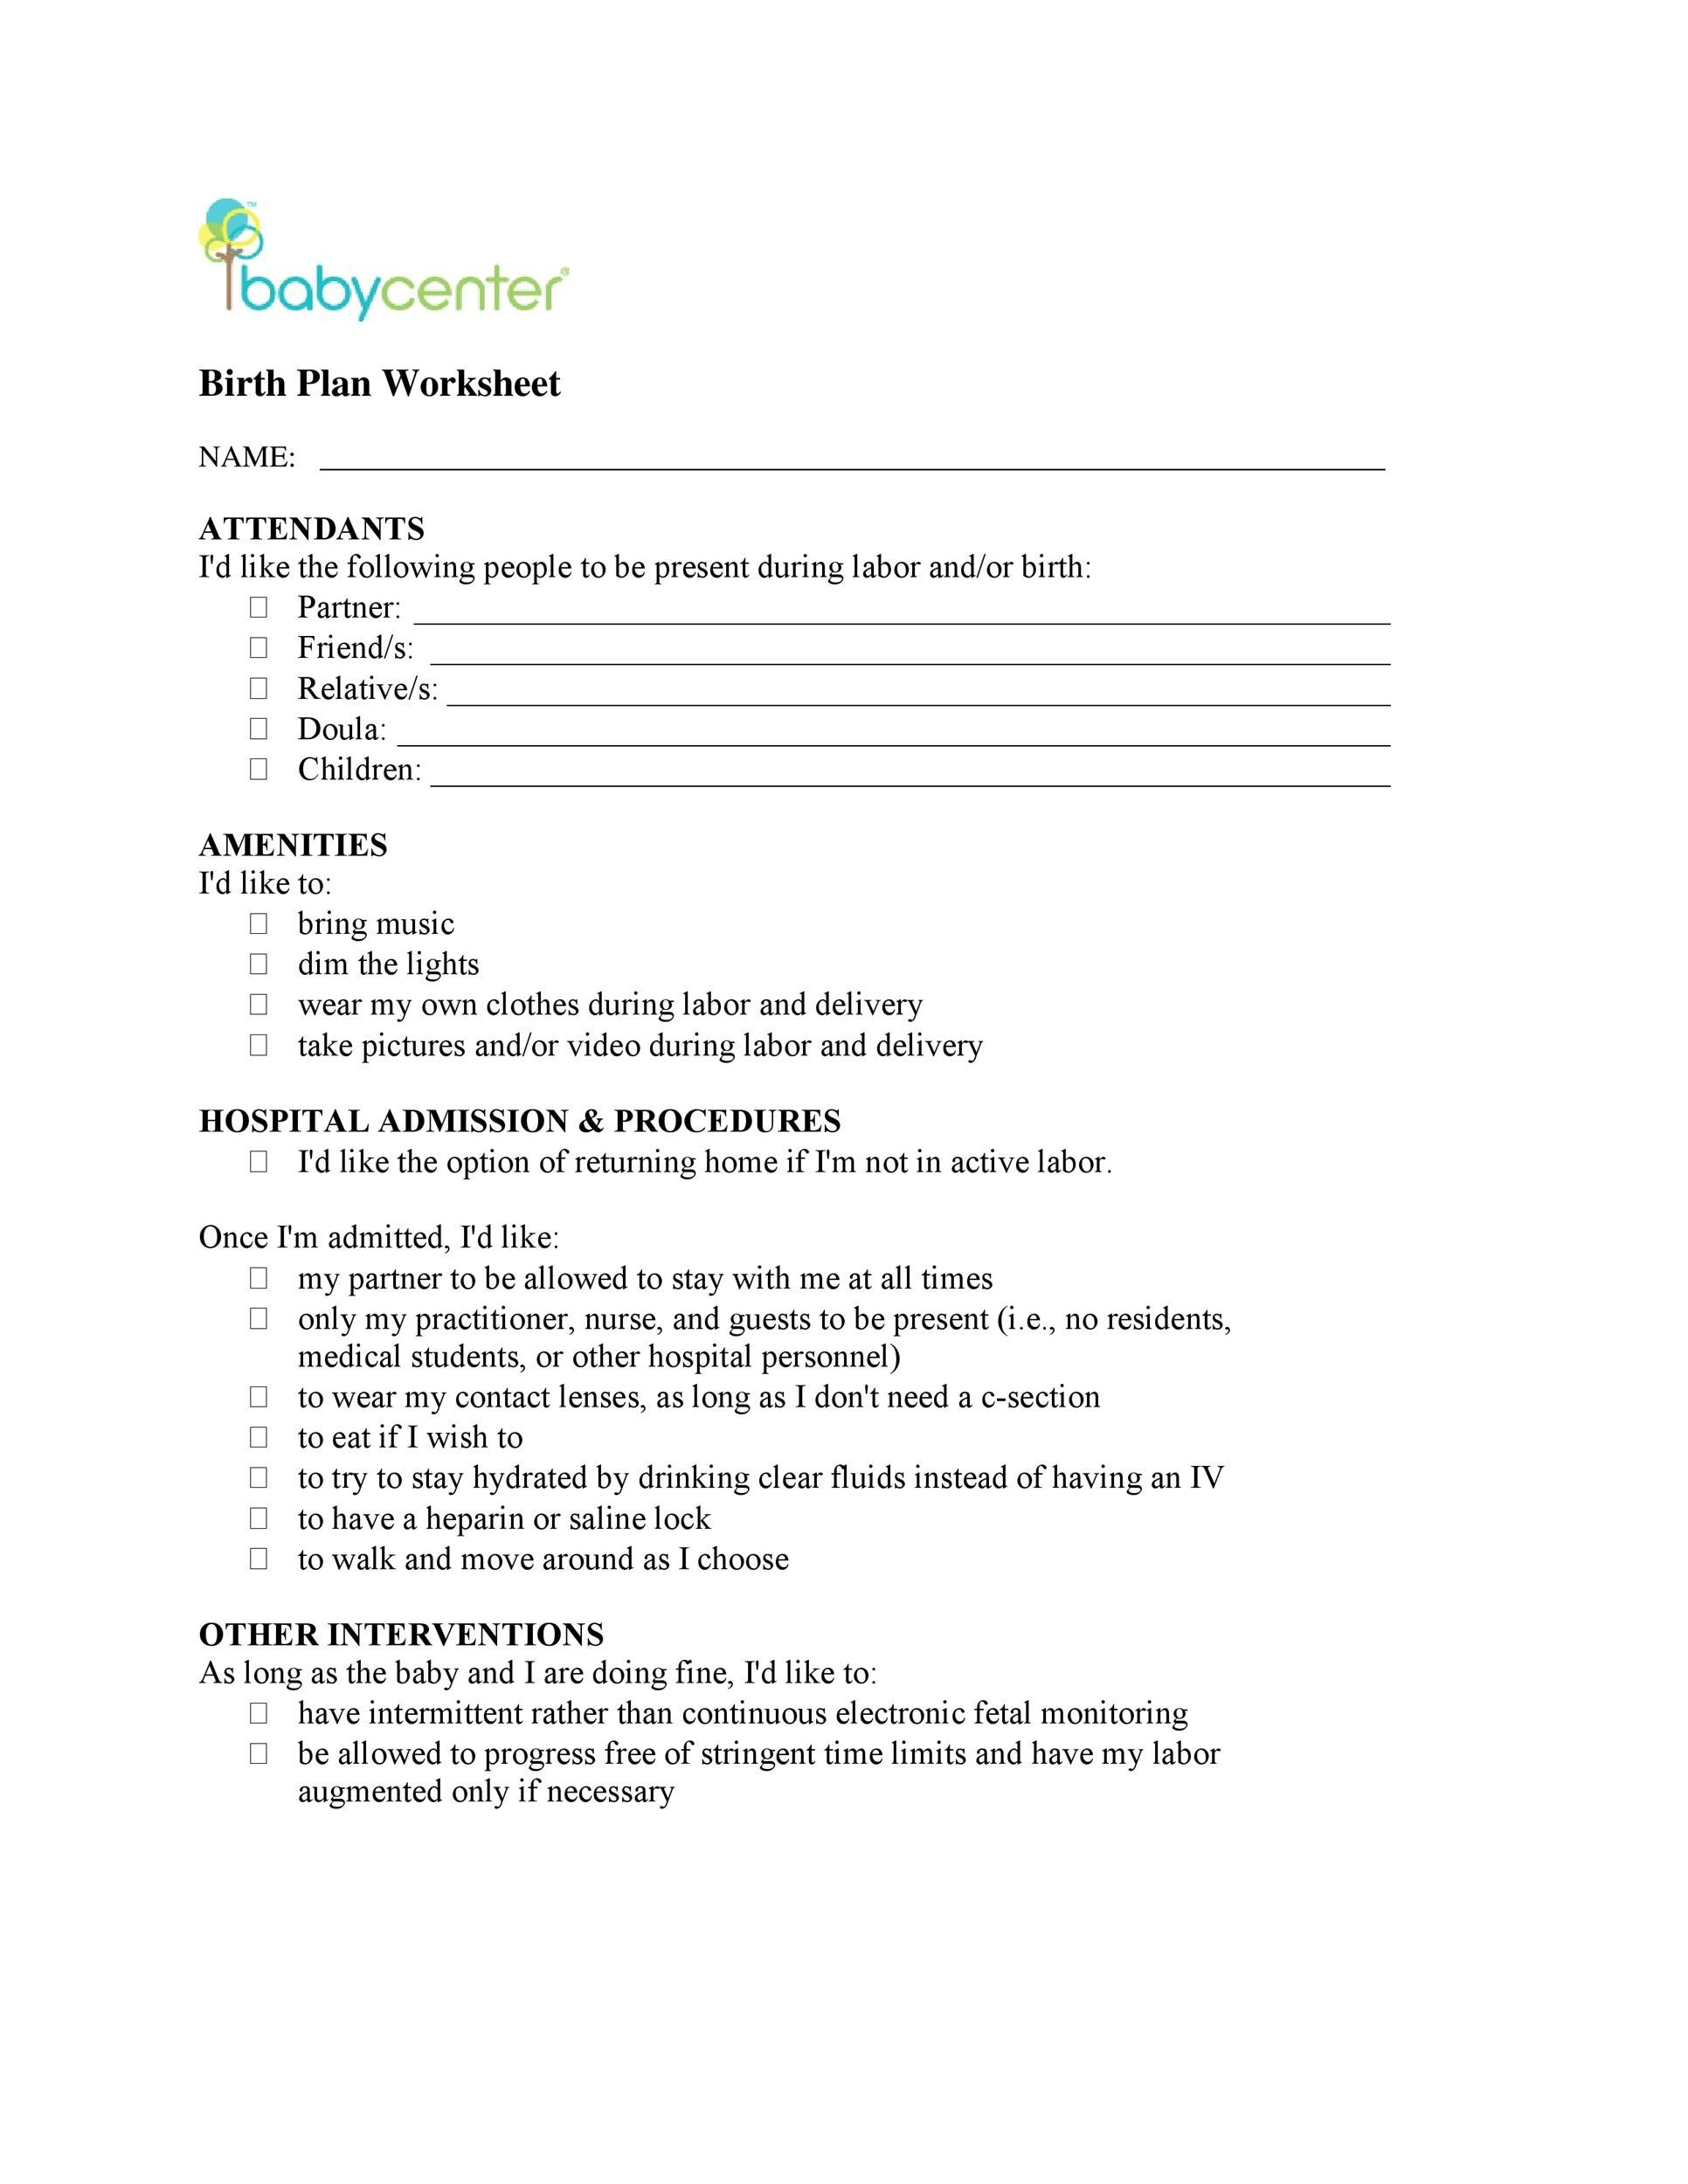 One Page Birth Plan Template from templatelab.com